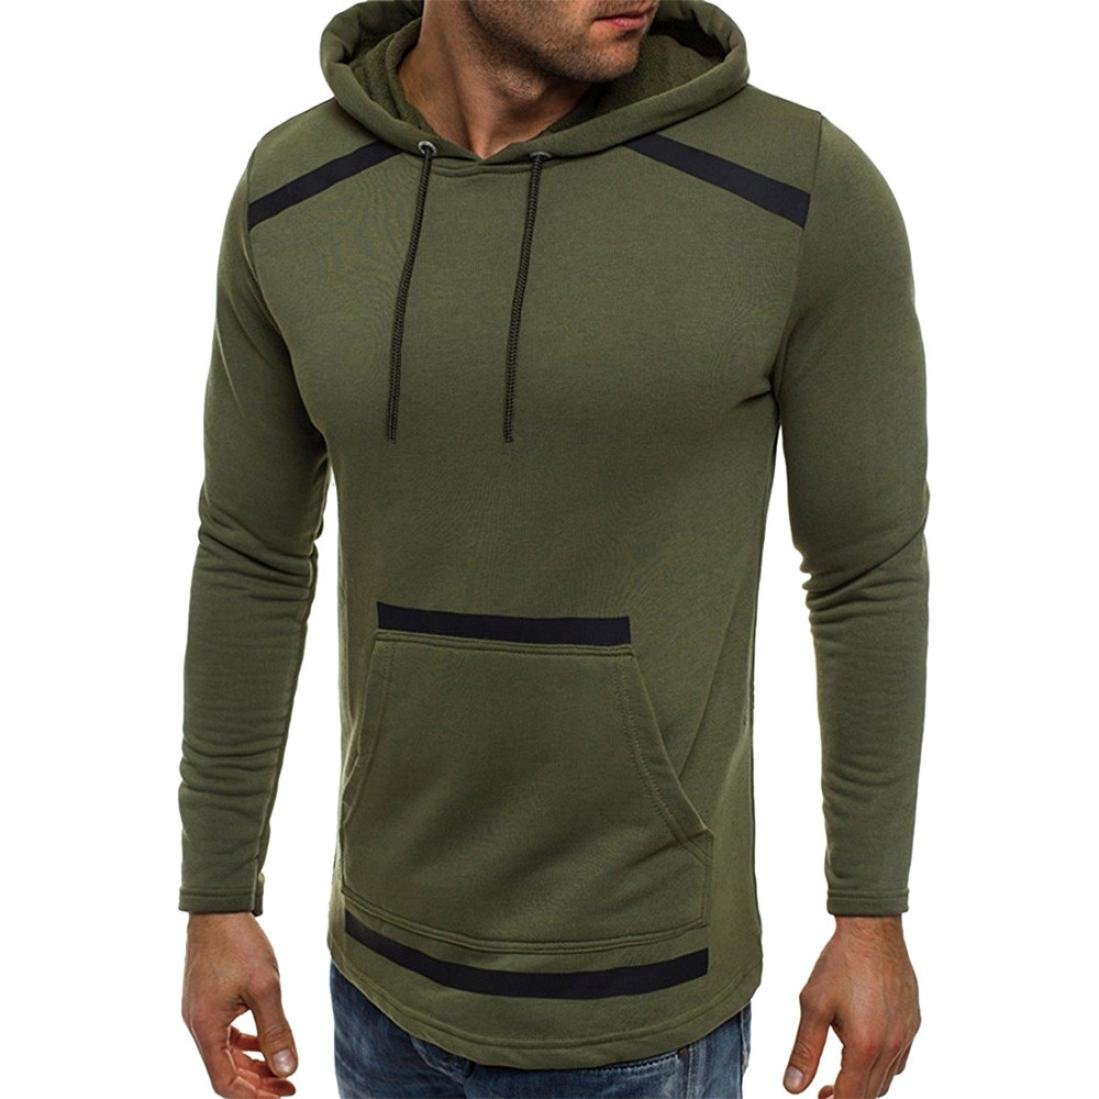 a53c7230c2d3 BingYELH Mens Hoodies Pullover with Pocket - Long Sleeve Casual ...